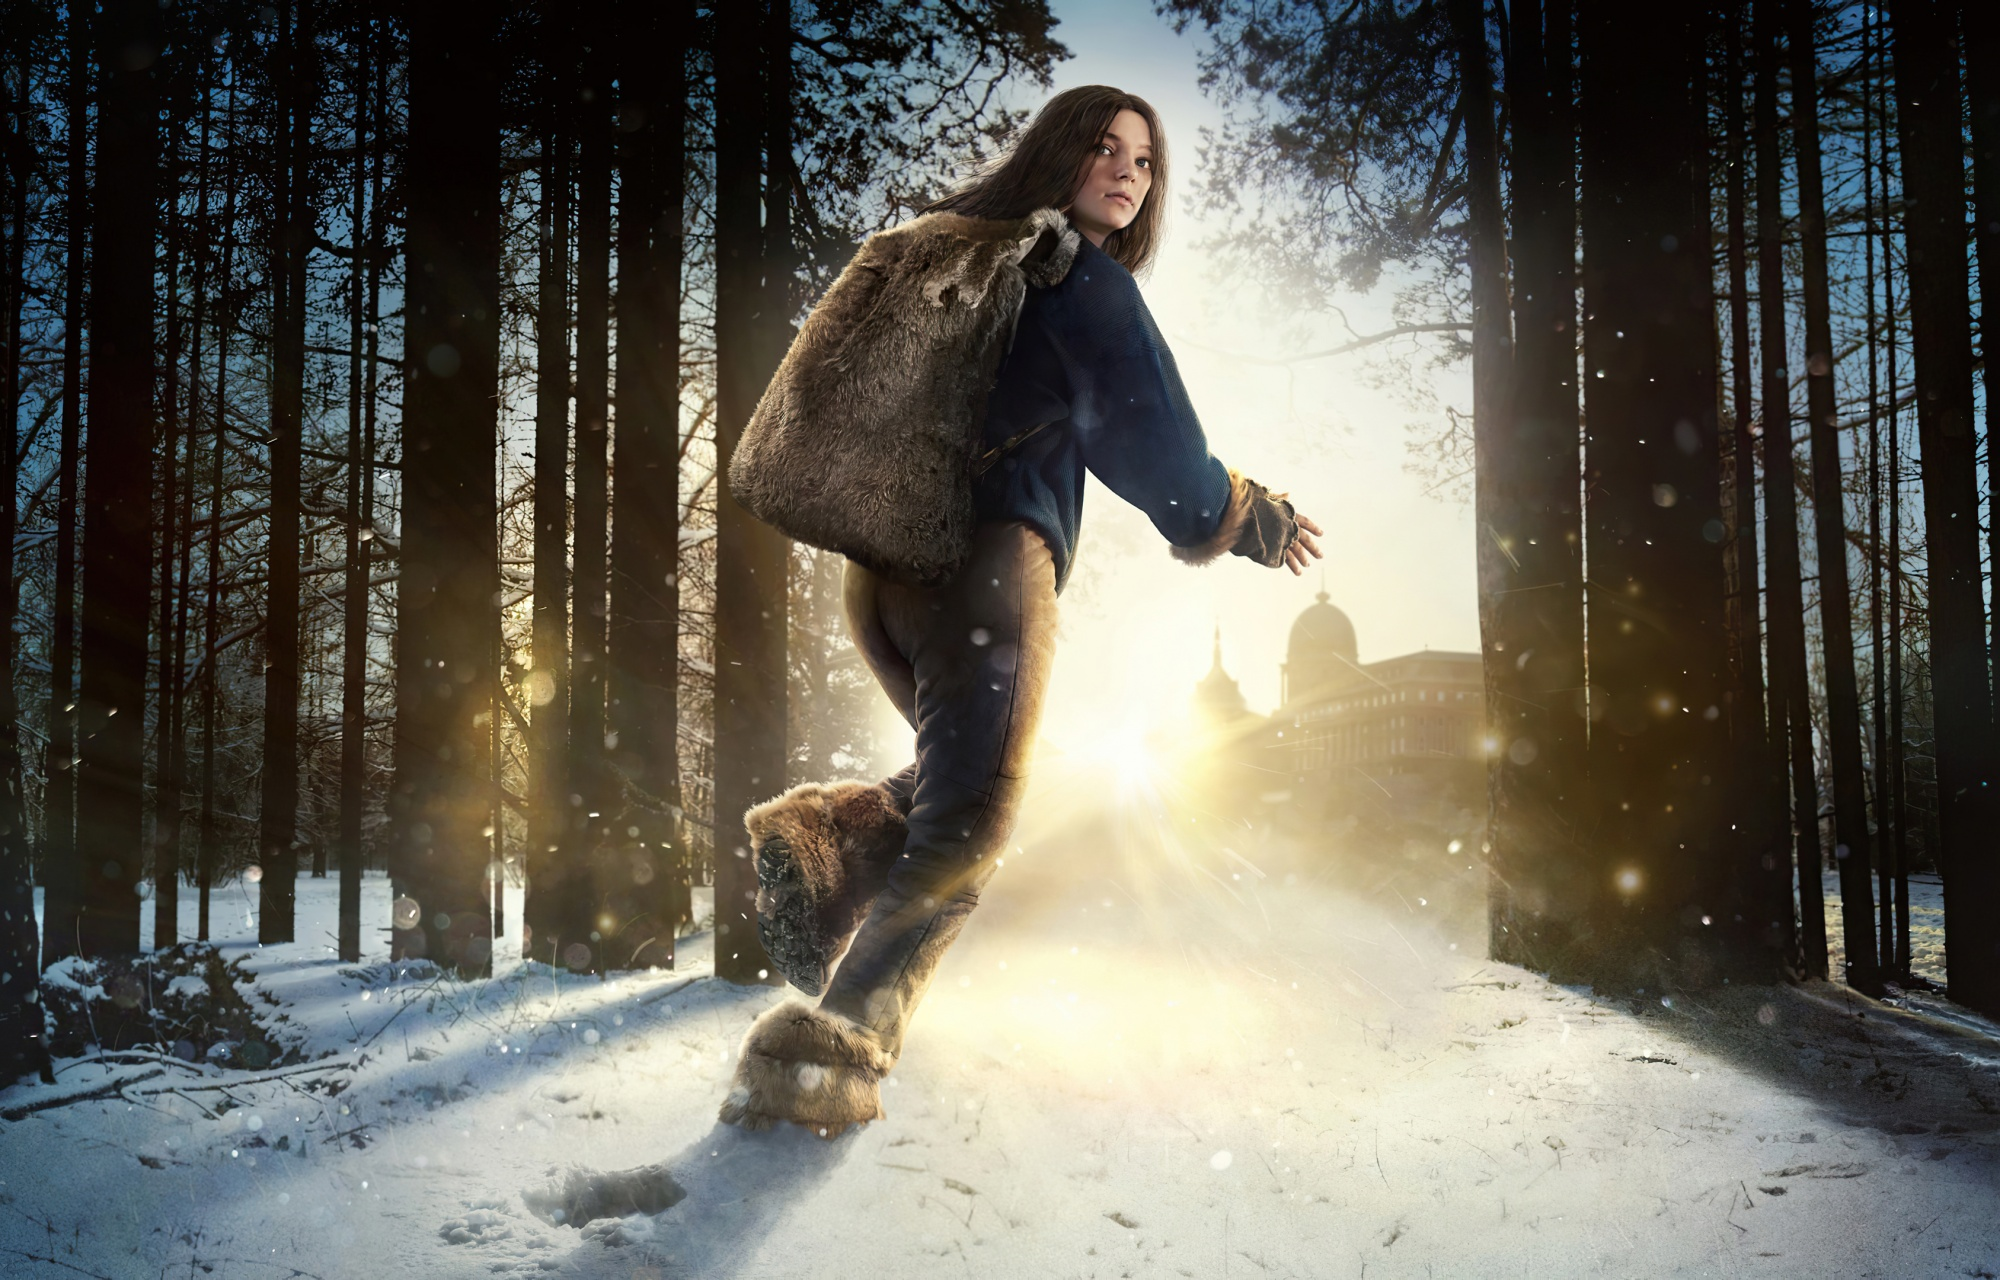 binge watch with your teens, Hanna, Amazon Prime, young girl running in the snow forest